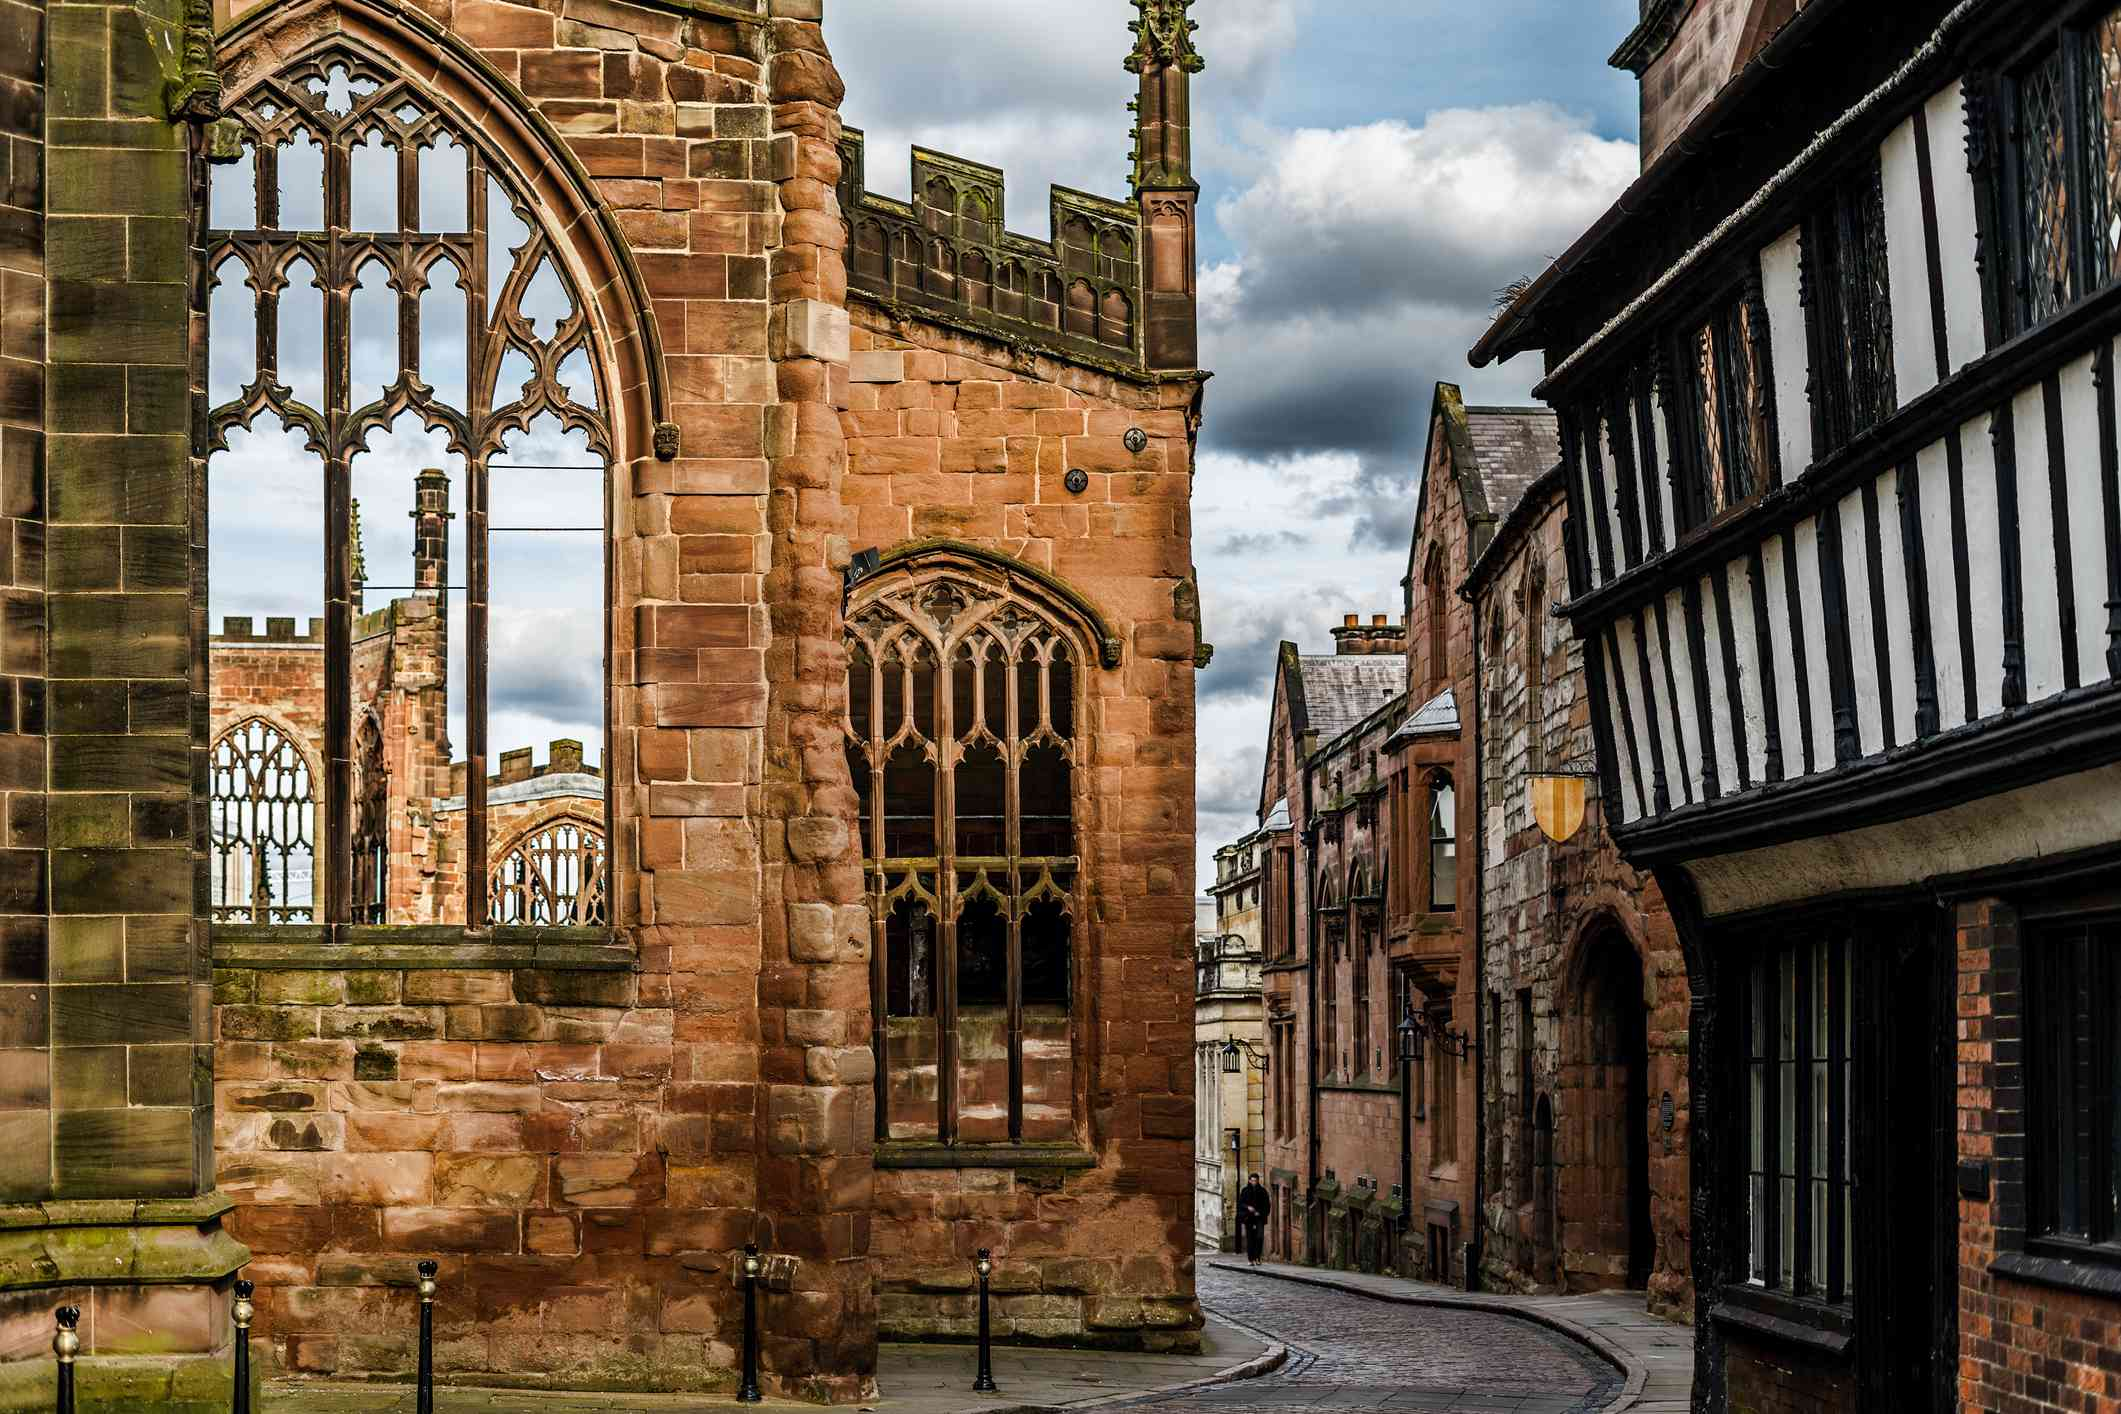 Old English Architecture street in Coventry